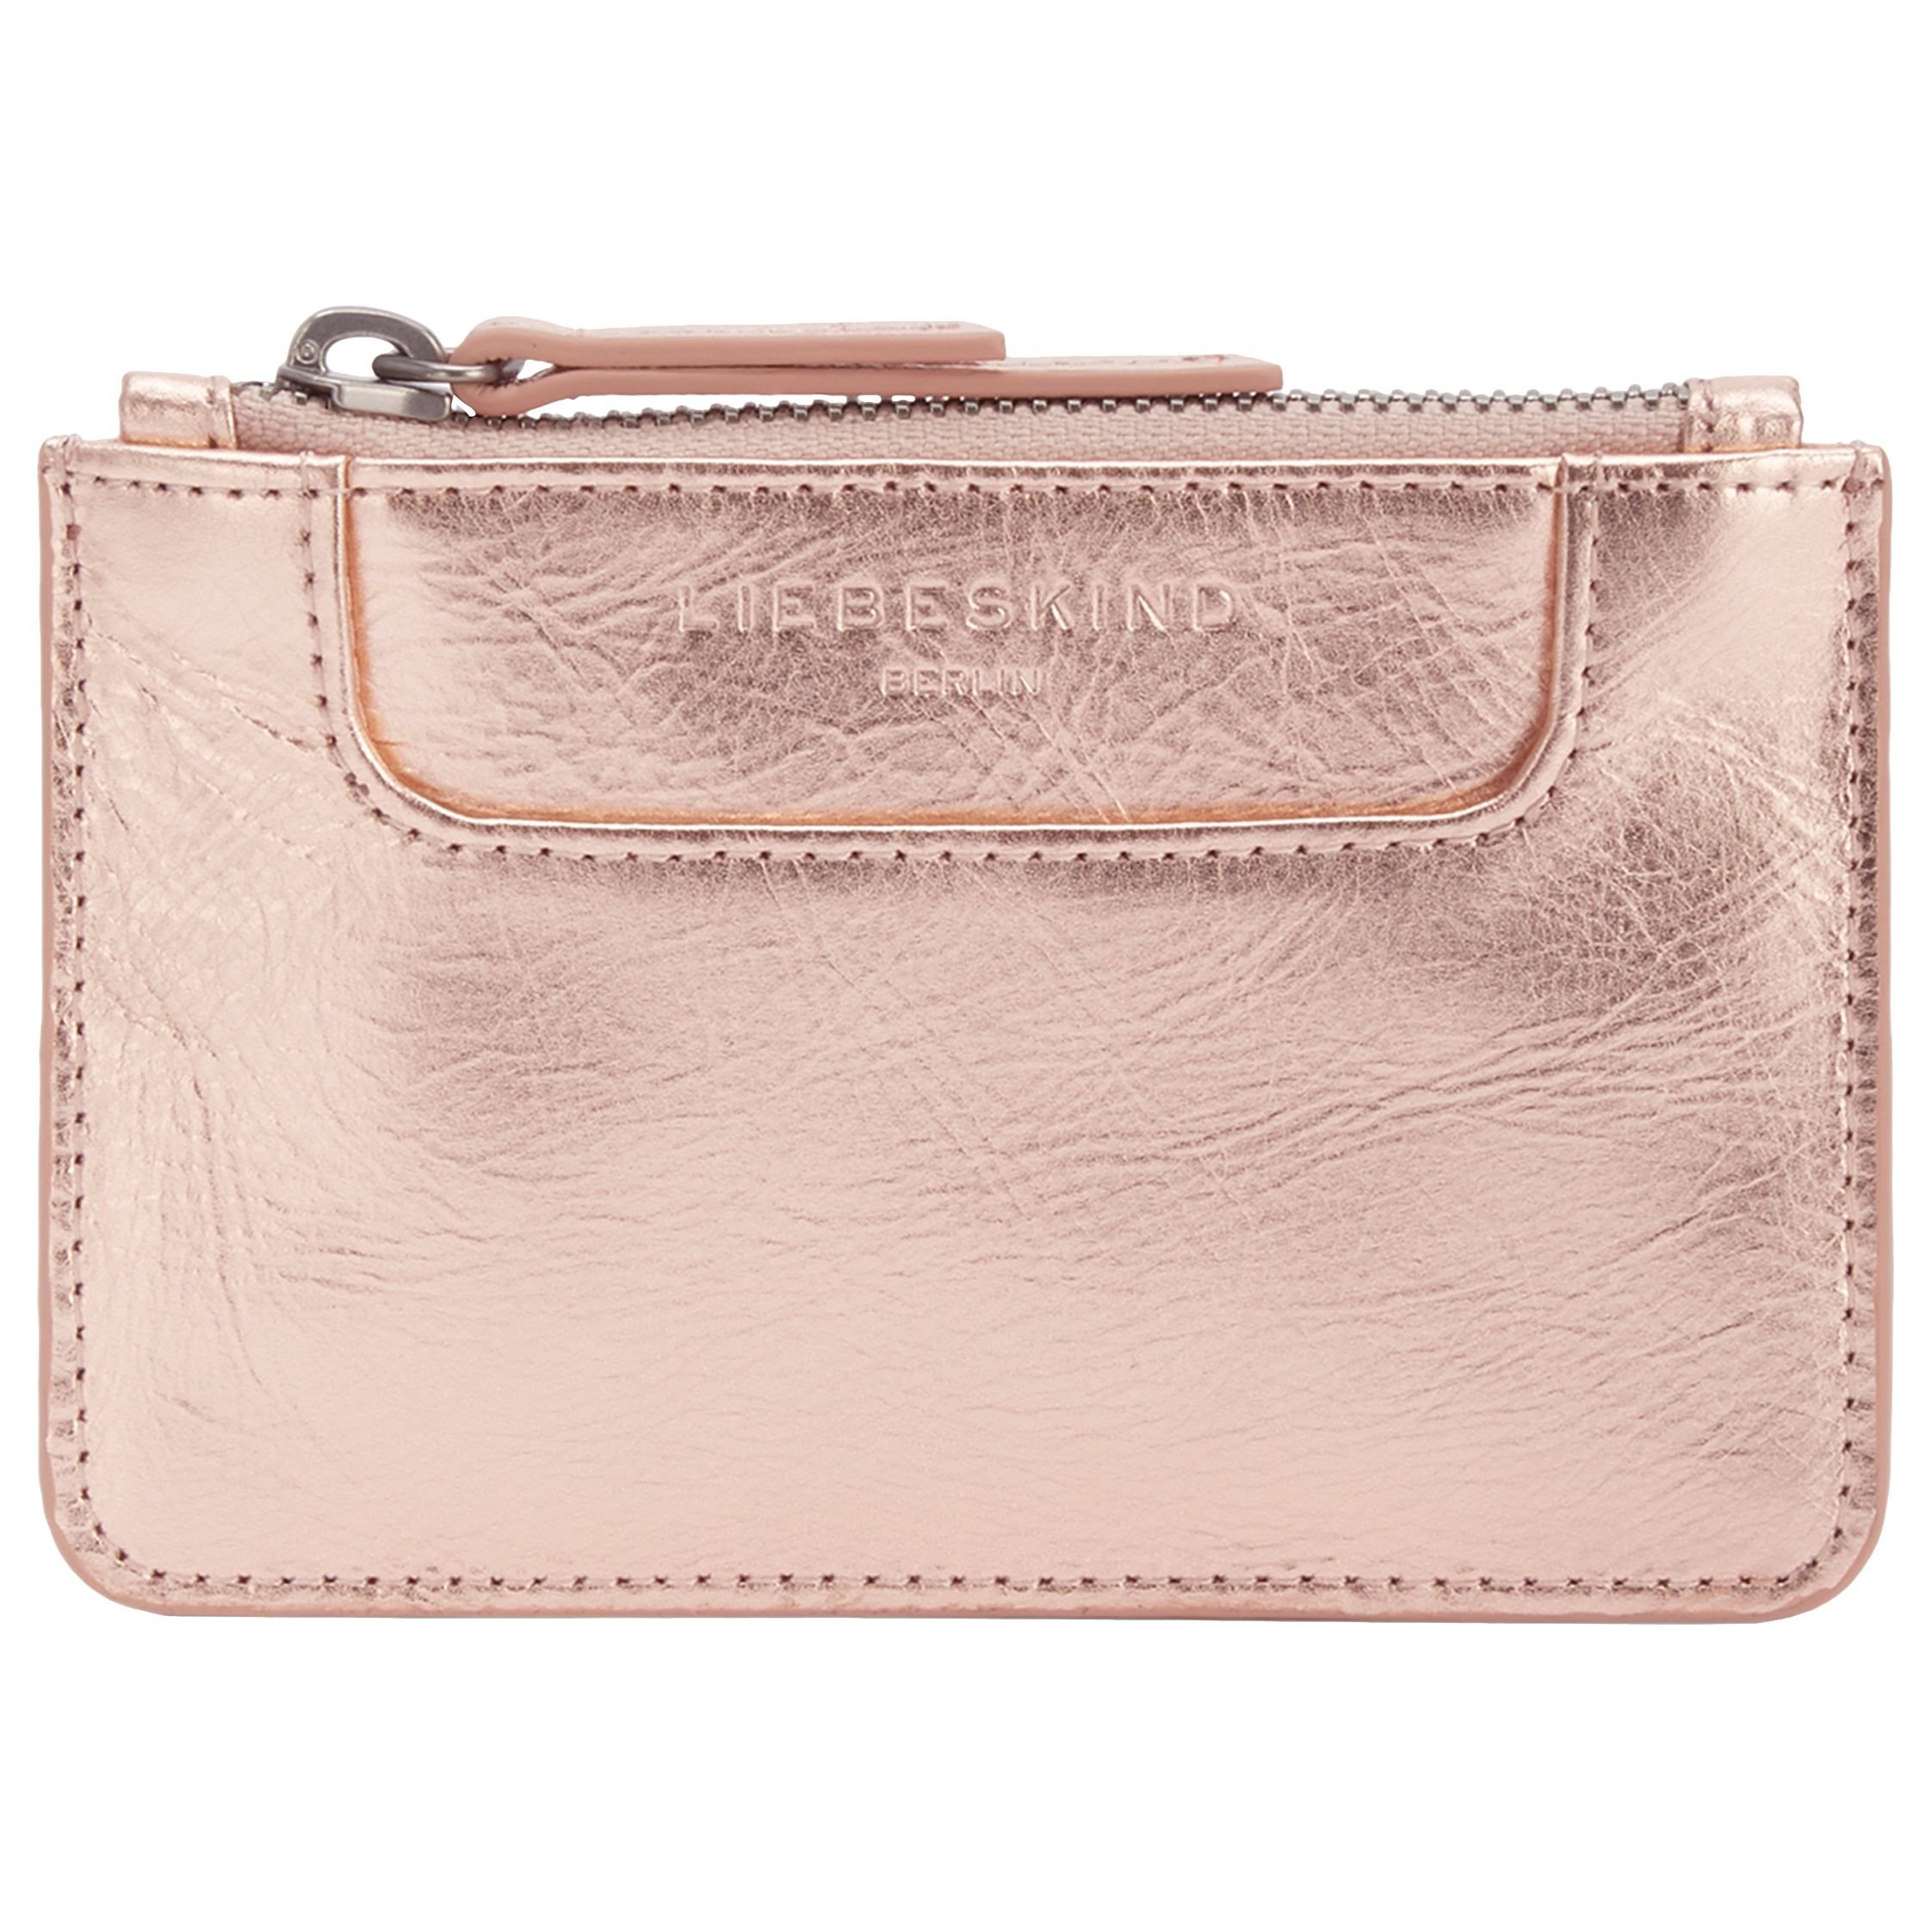 Liebeskind Liebeskind Matti Card Holder, Rose Gold